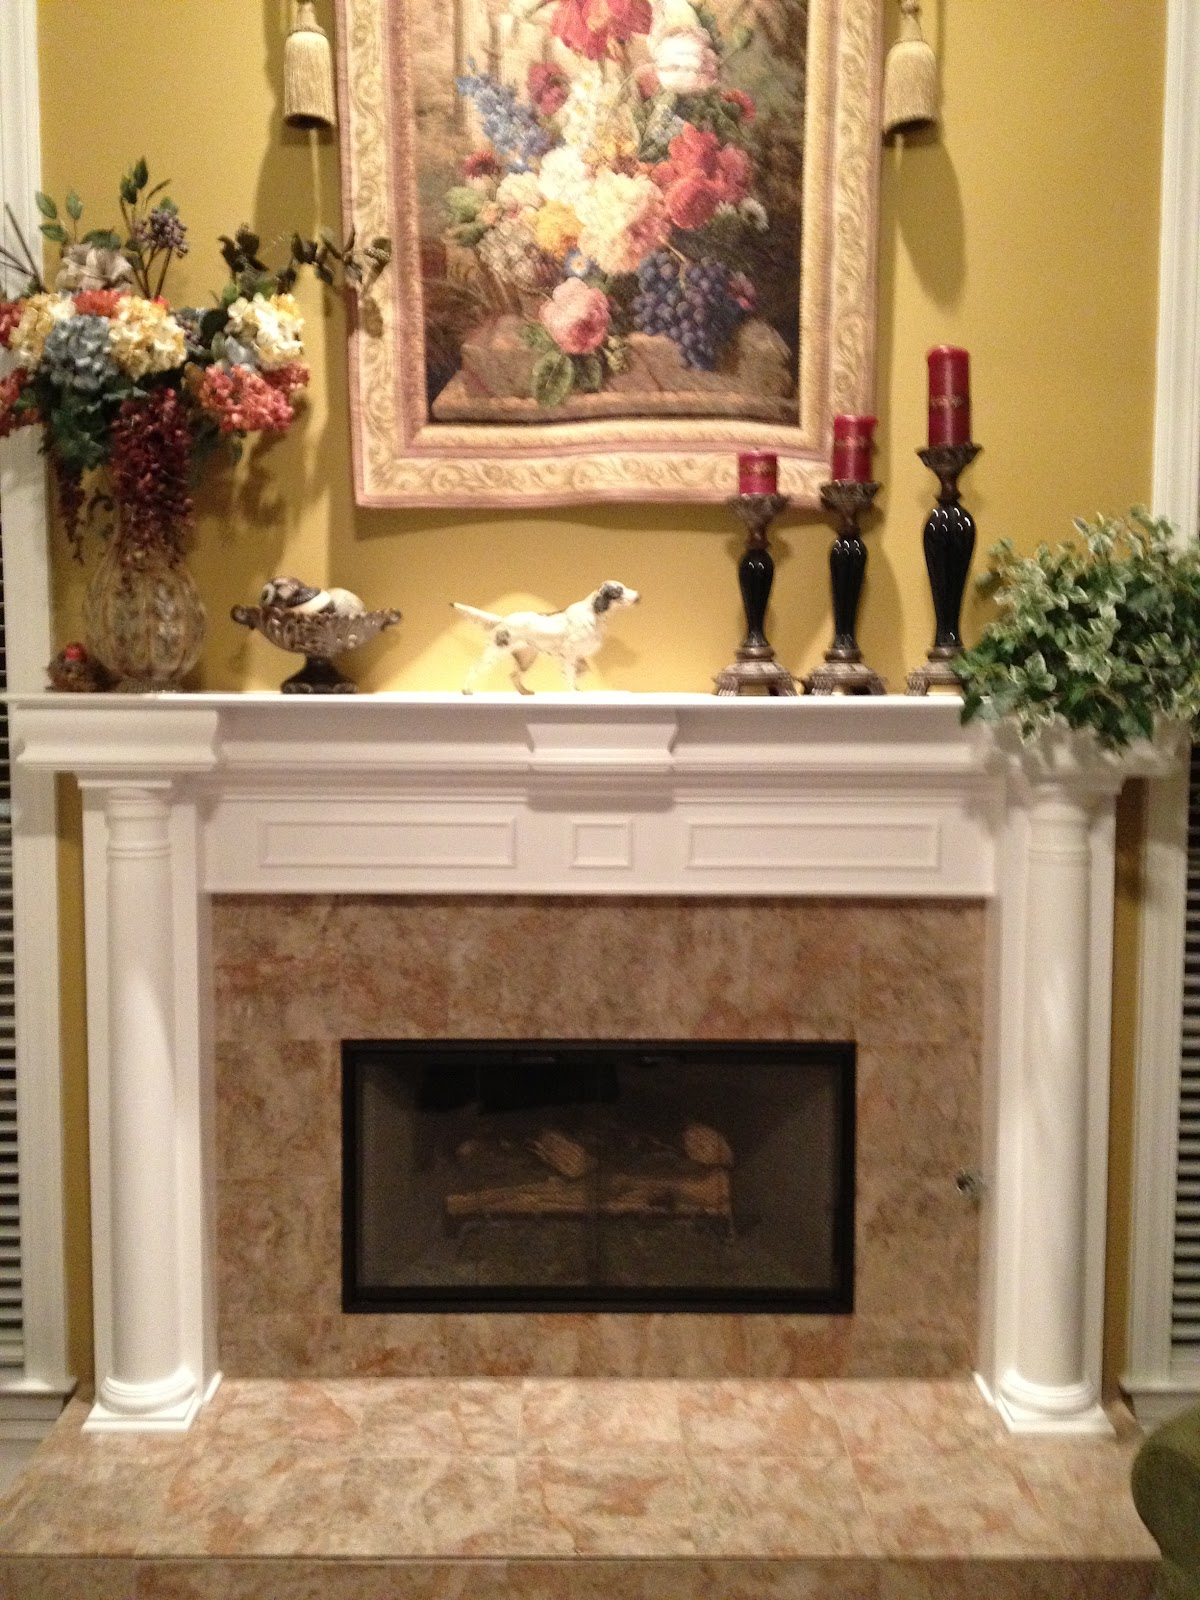 Fireplace Decorating: How to Build Fireplace Doors Using